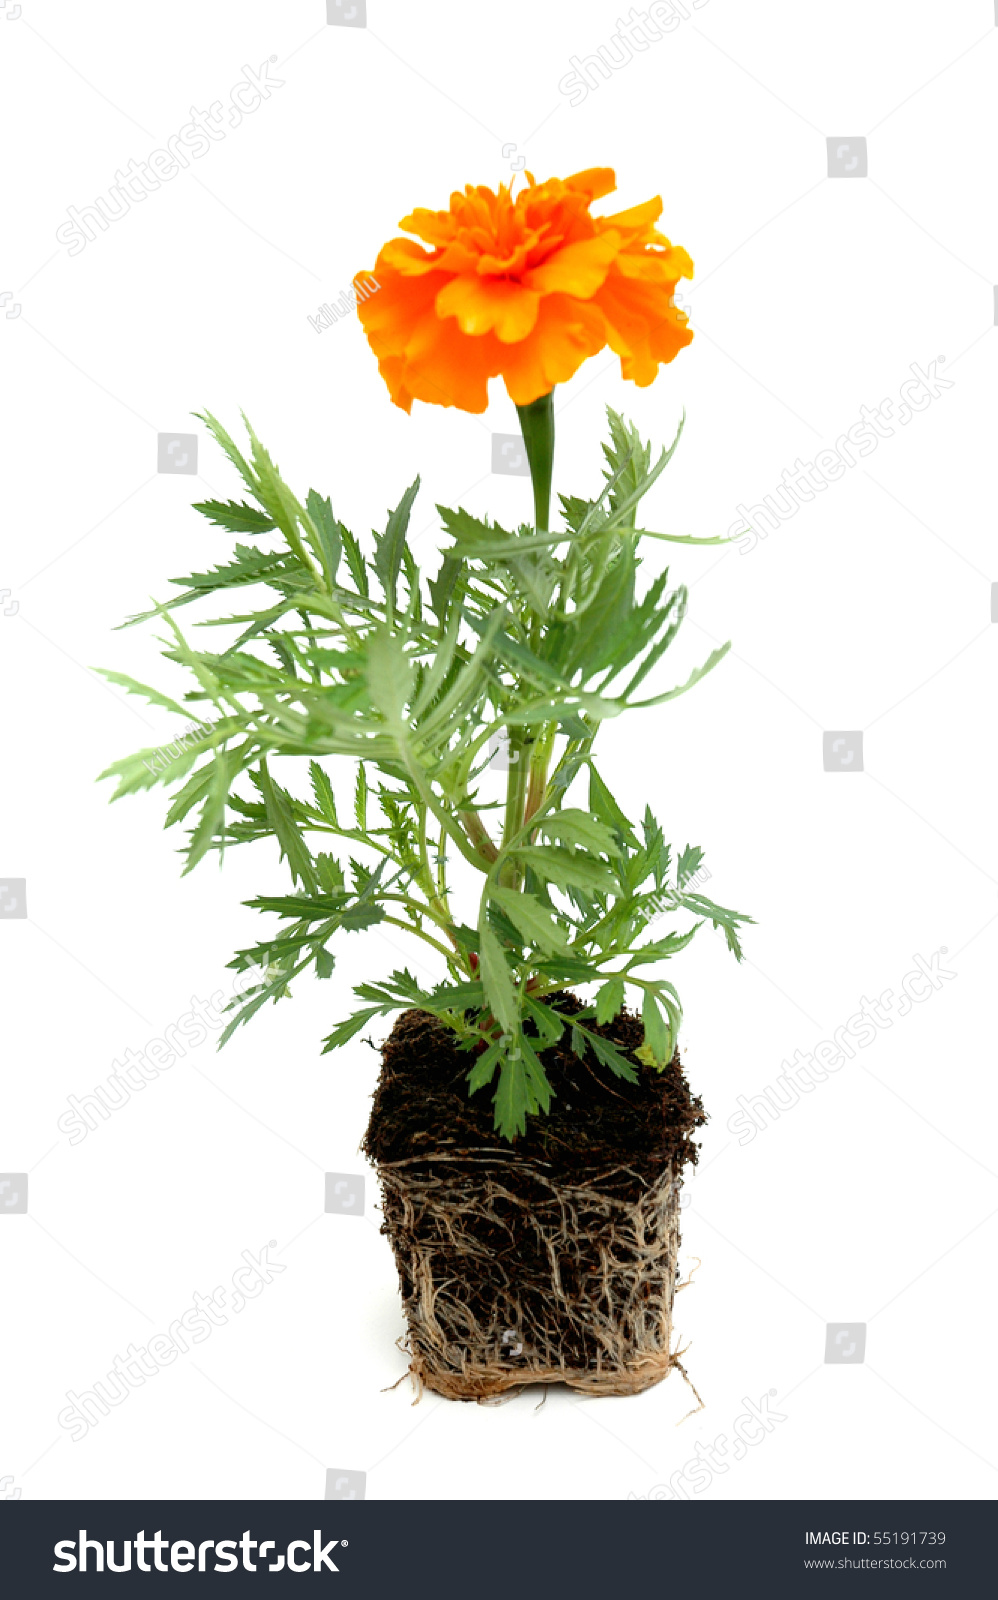 Marigold With Roots In Soil Stock Photo 55191739 ... Marigold Plant With Roots